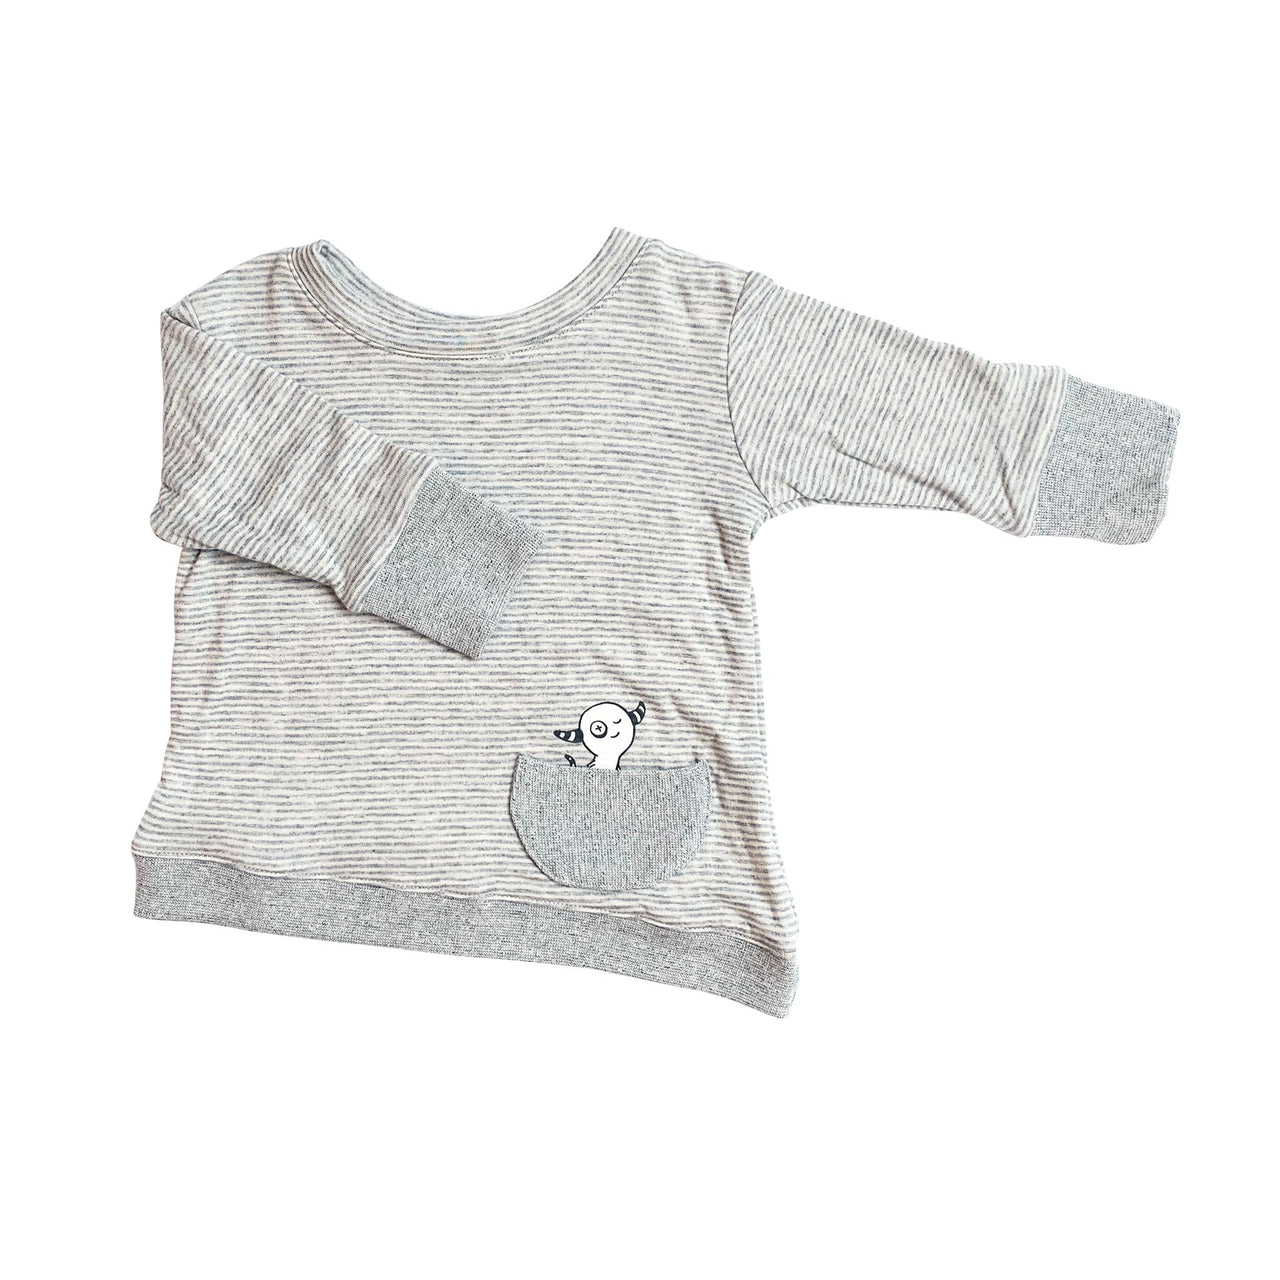 Kids & Babies - Asymmetric Pullover - Grey Skinny Stripes